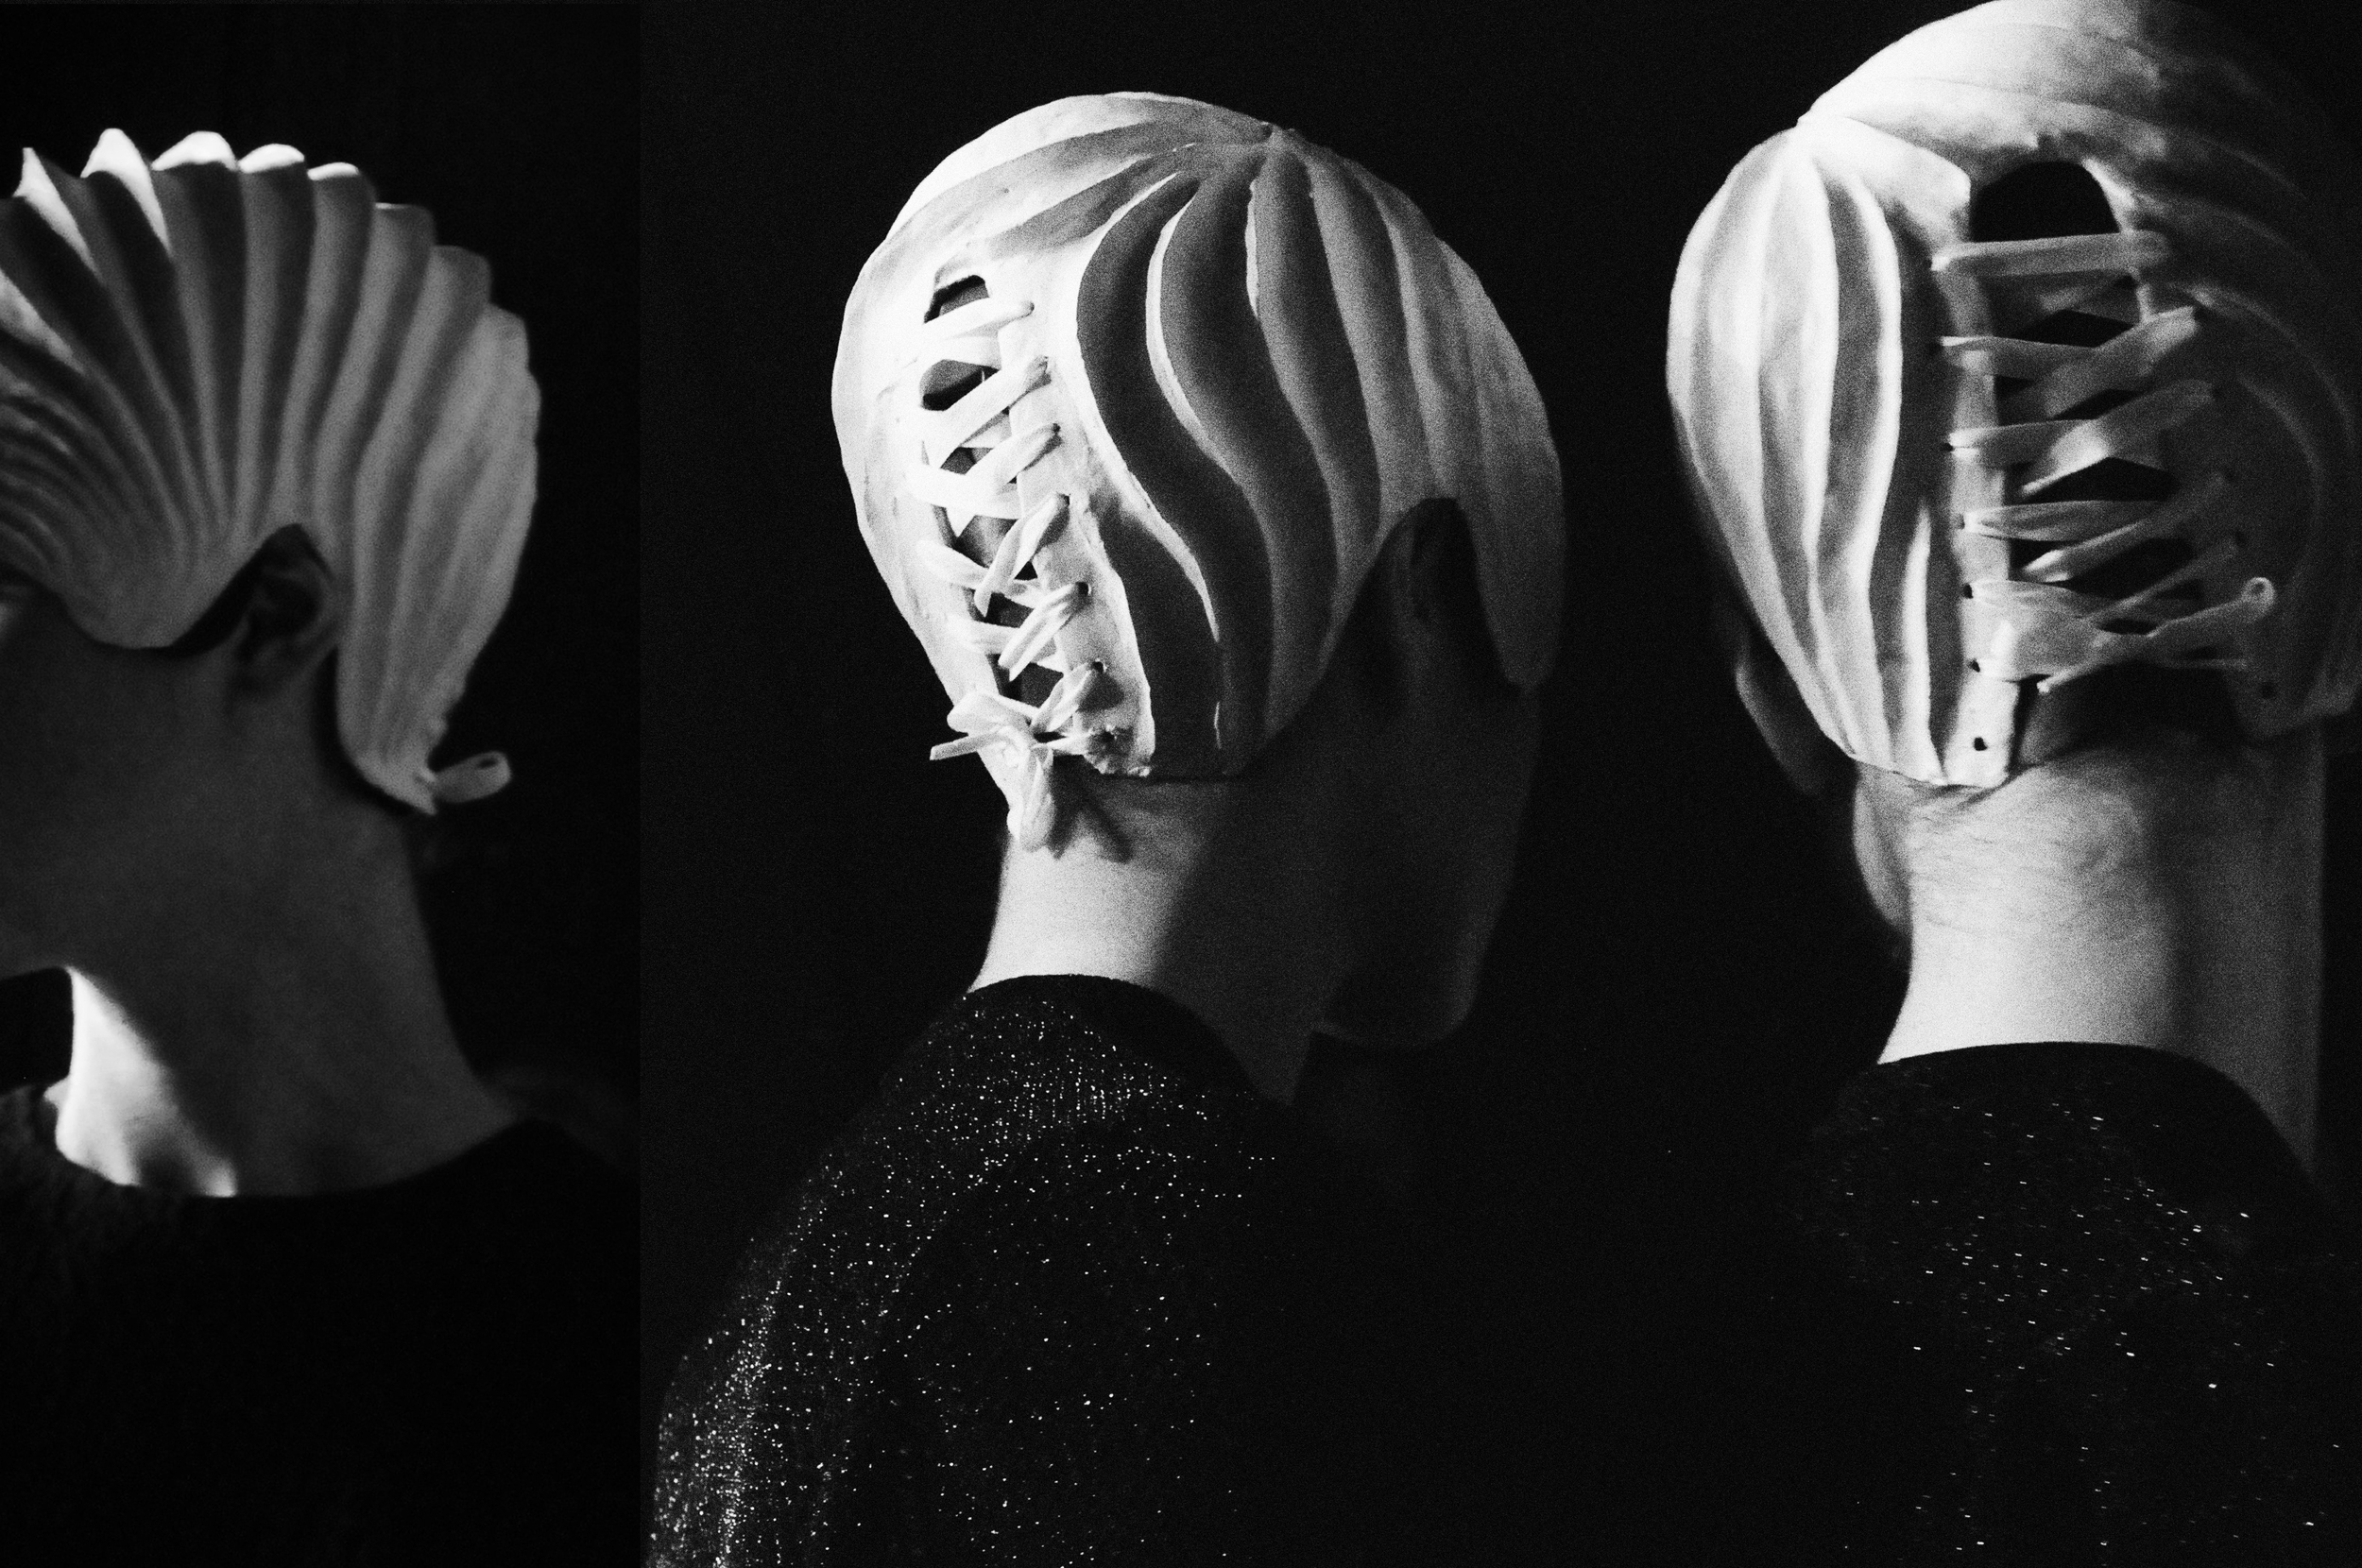 anrealage SS 2015 backstage photography by floriana castagna| S/TUDIO